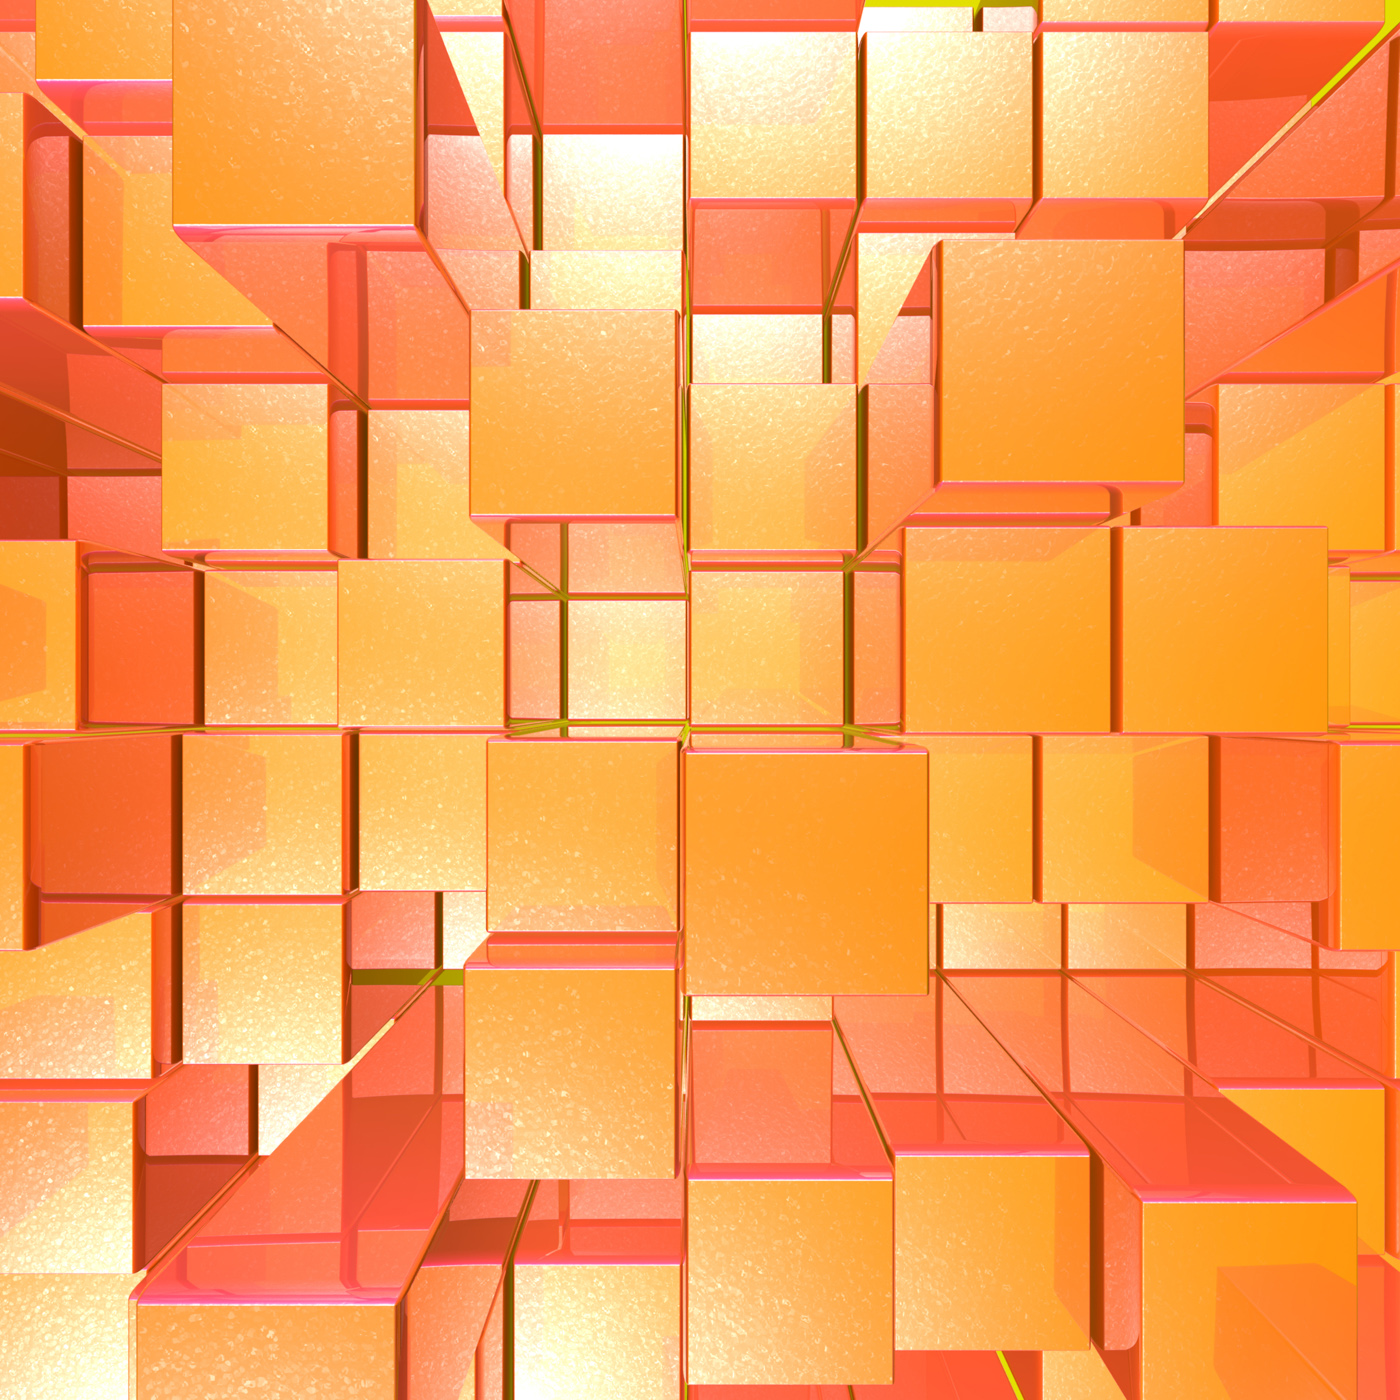 Bright glowing red and orange background with artistic cubes or square photo